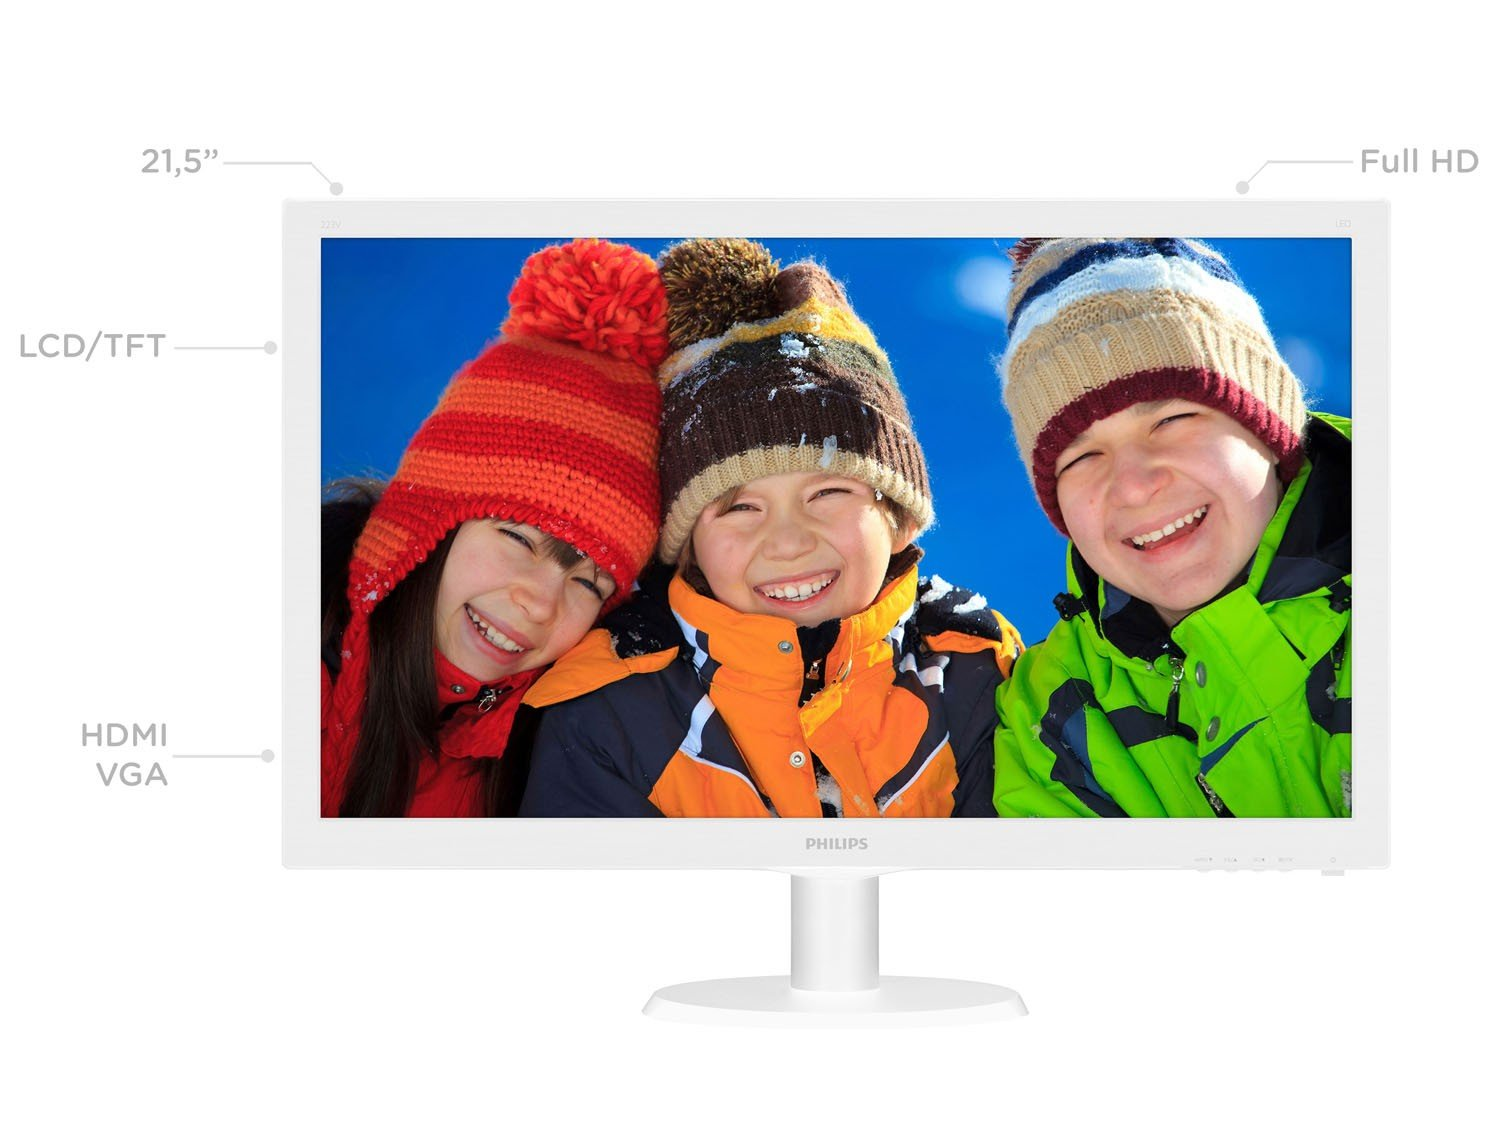 Foto 2 - Monitor para PC Full HD Philips LCD Widescreen - 21,5 223V5LHSW